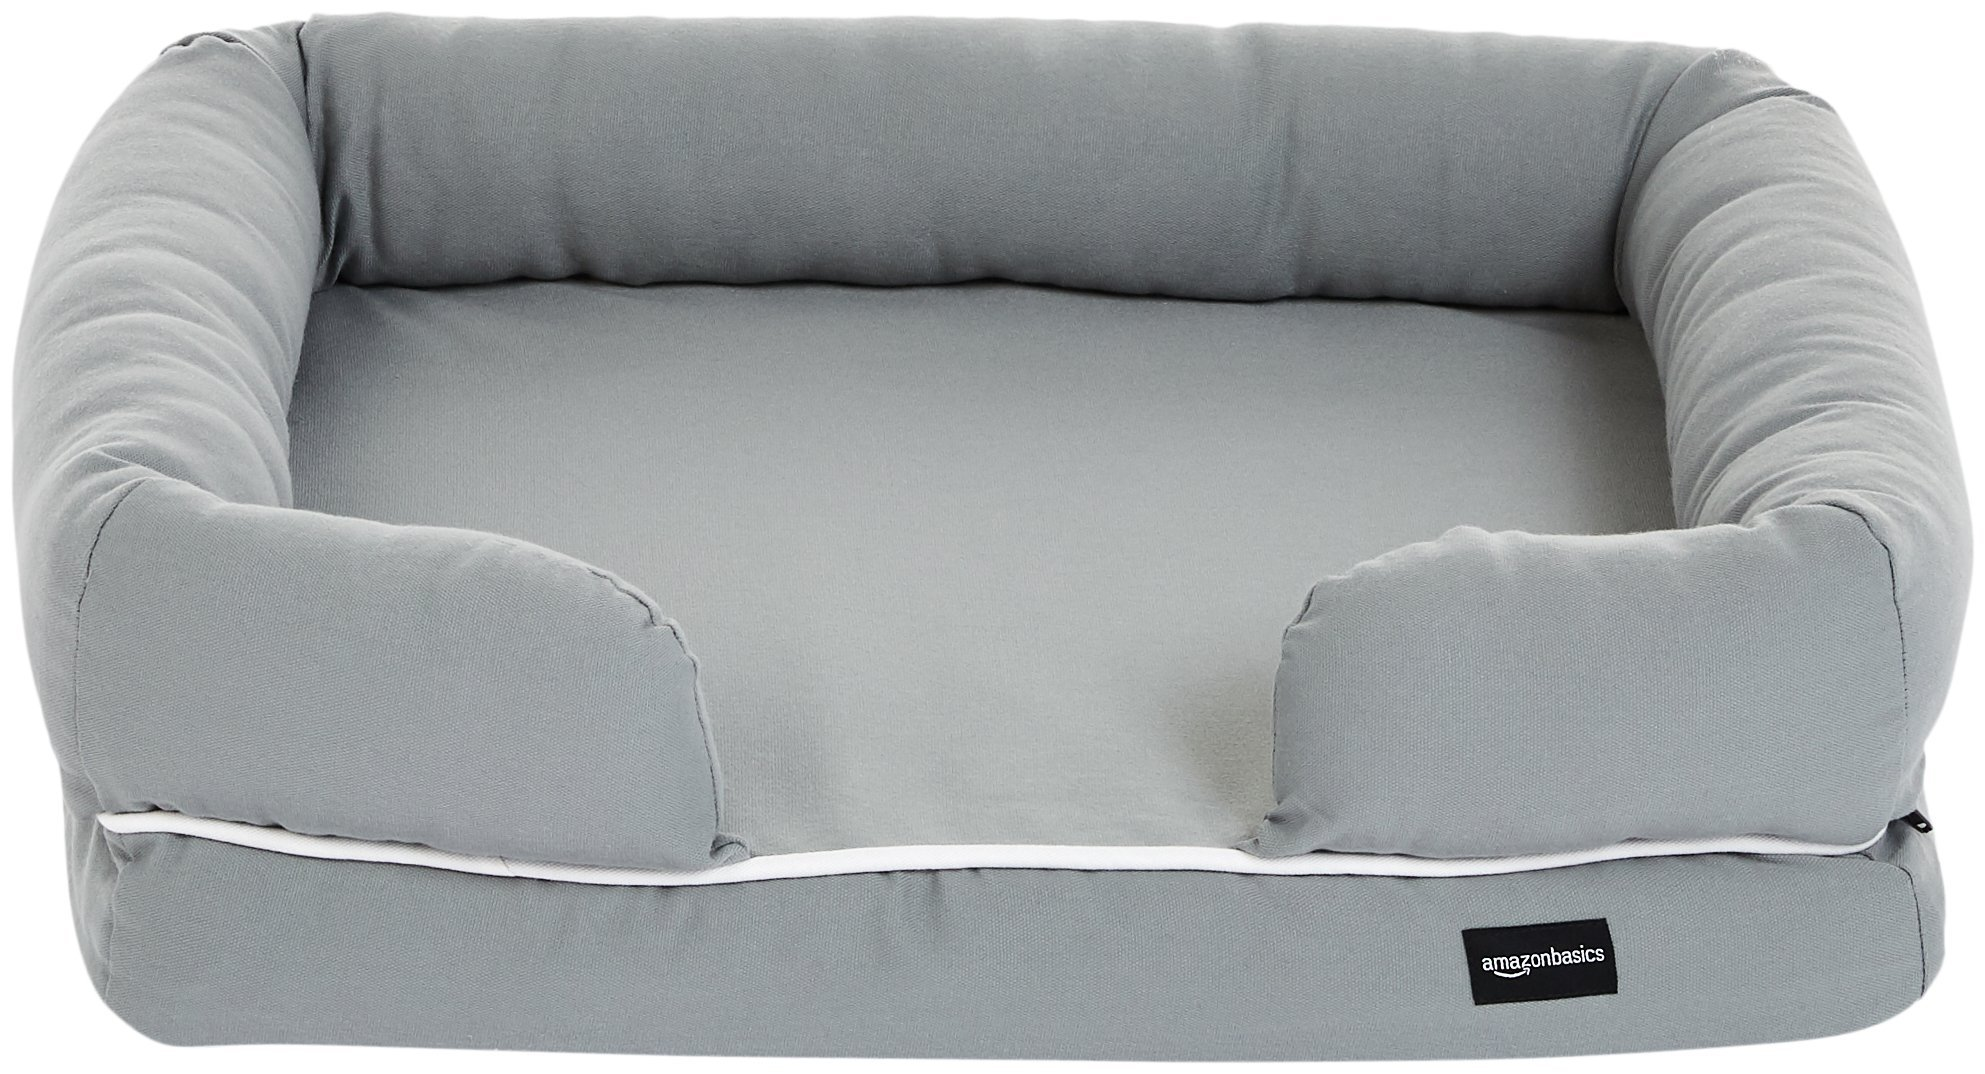 Amazon Basics Pet Sofa Lounger Bed Pad For Cats or Dogs